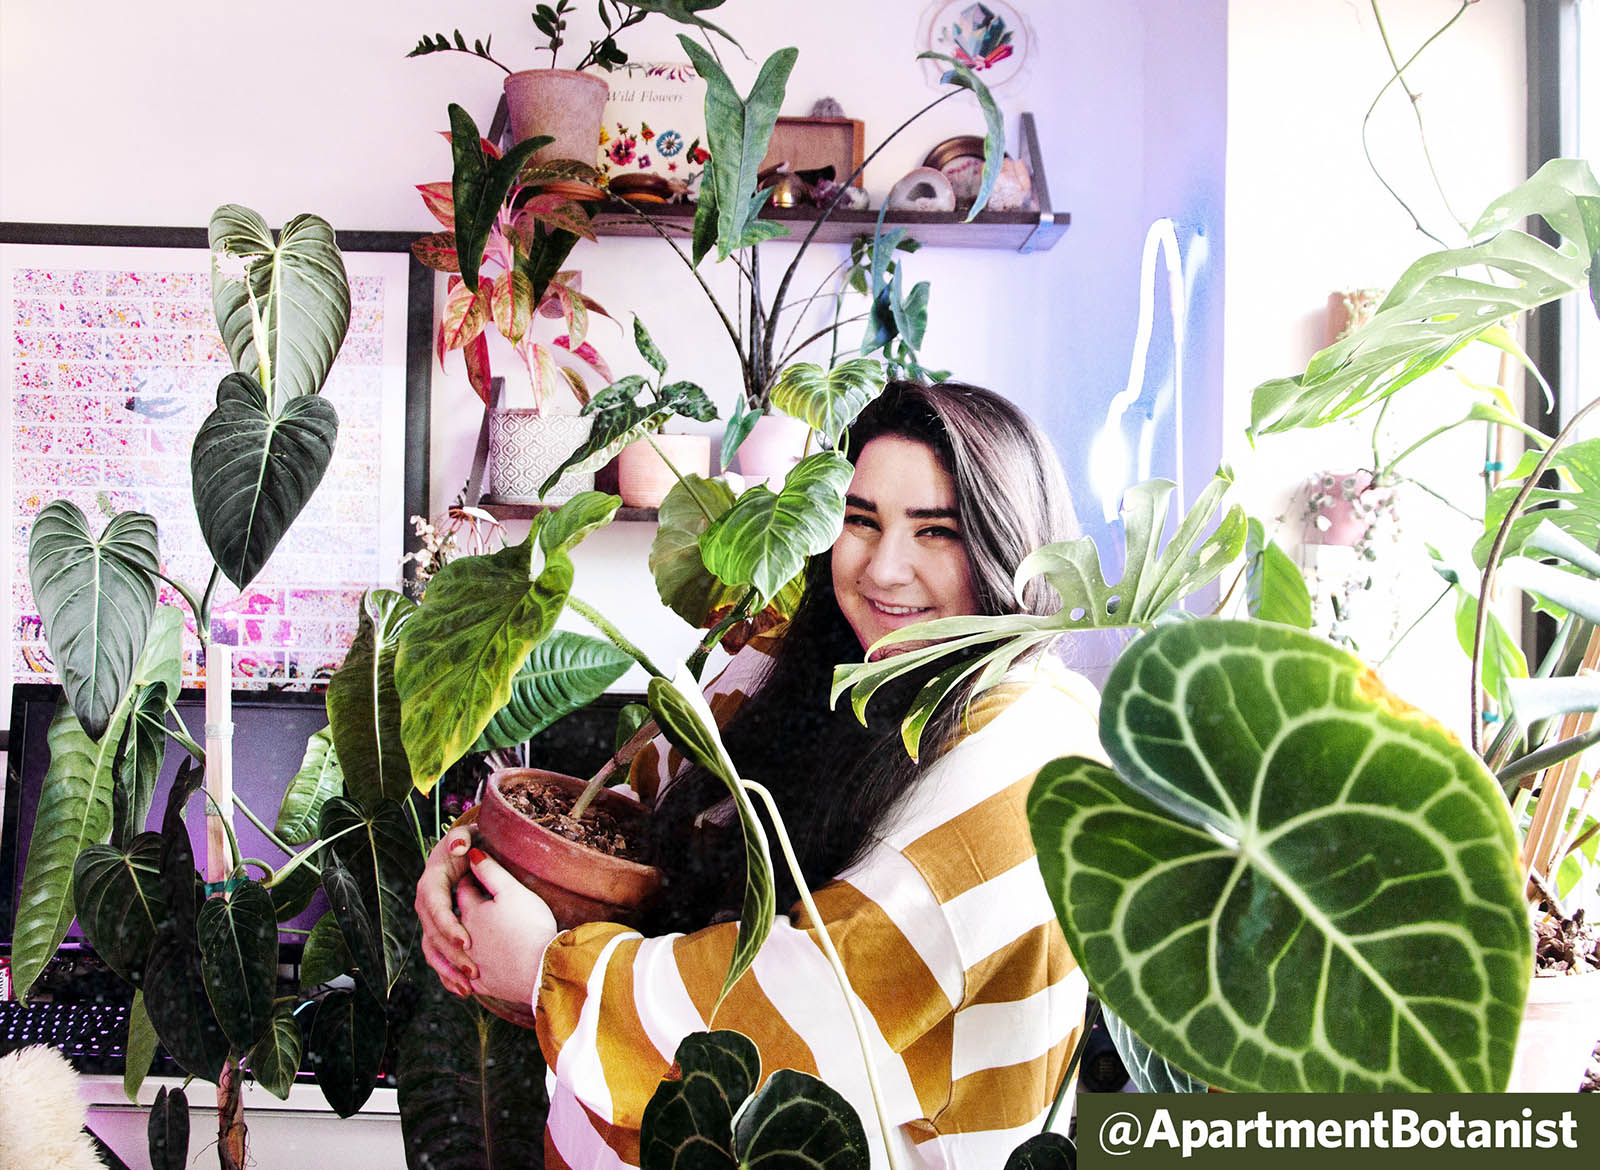 Q&A: Rare Plants and Humidity with @apartmentbotanist